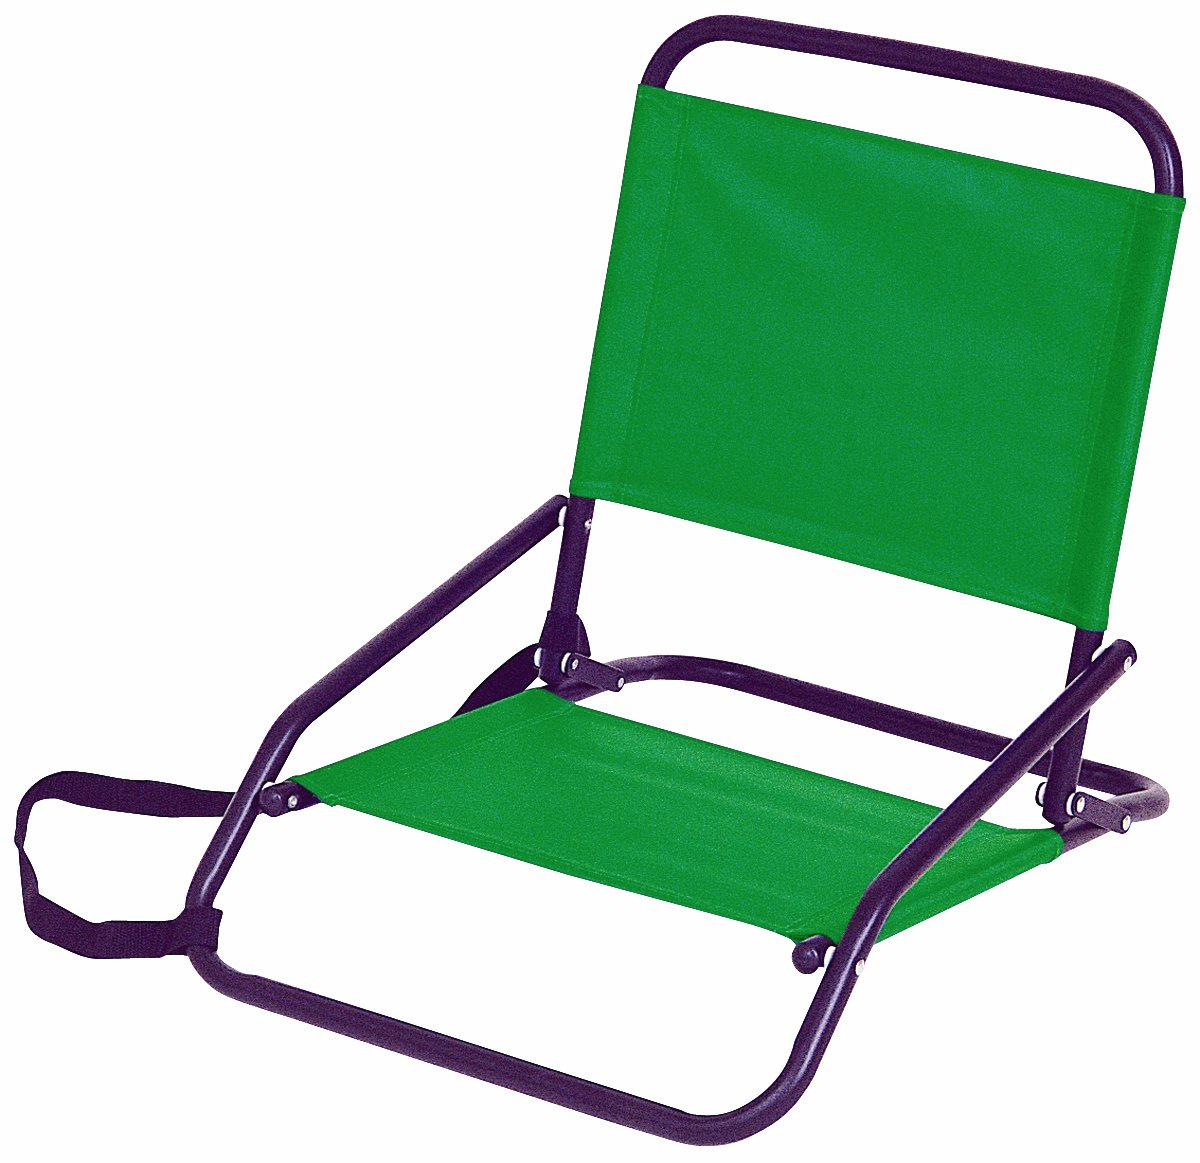 amazon com stansport sandpiper sand chair forest green sports